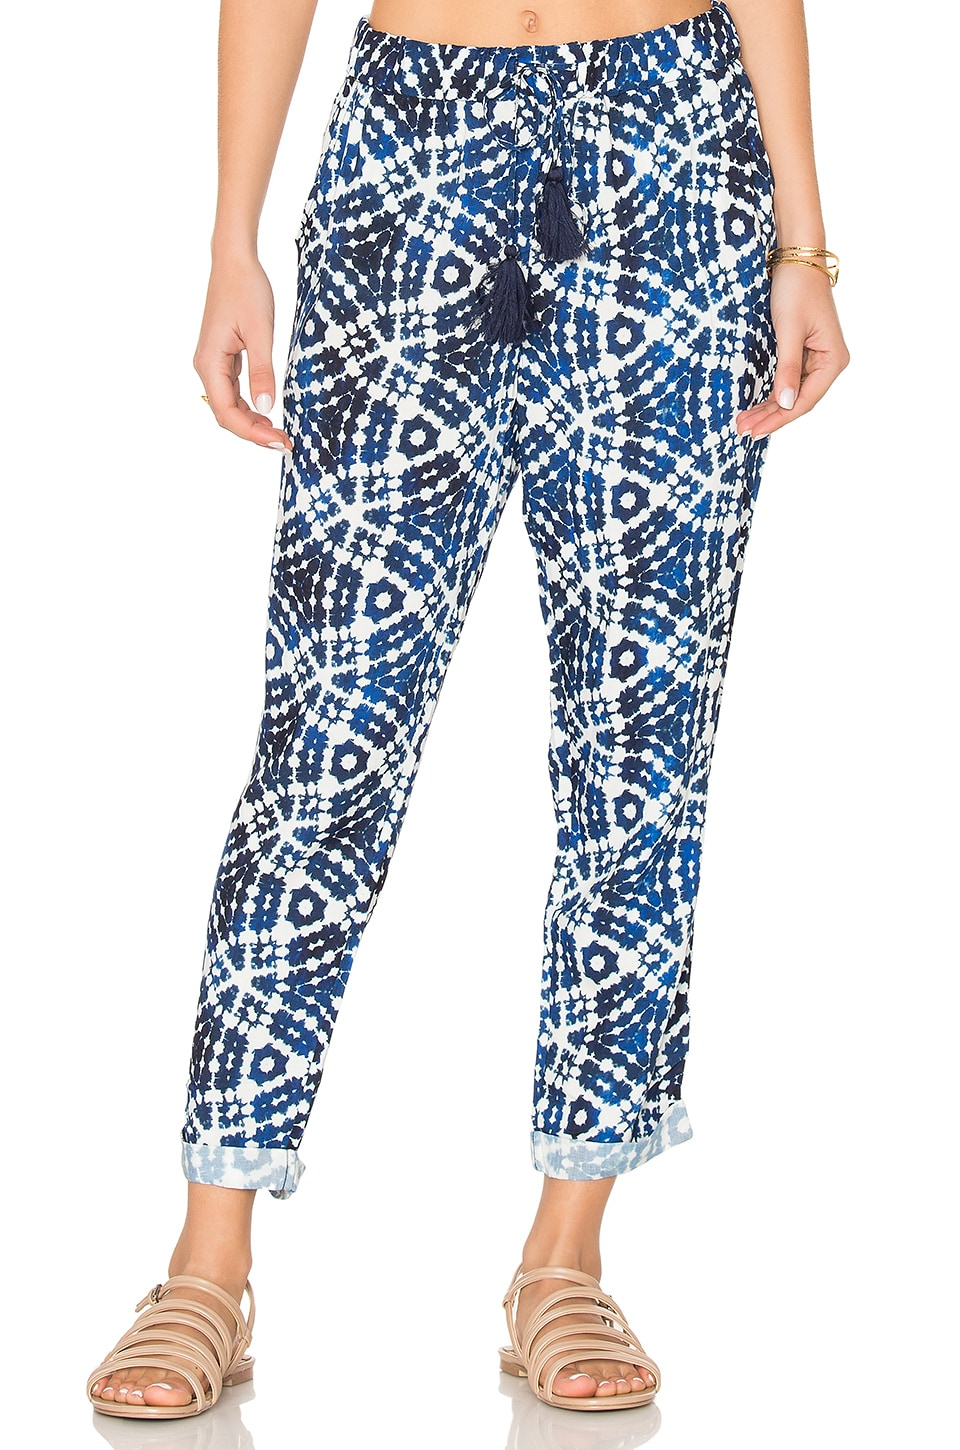 Seafolly Shibori Pant in Indigo